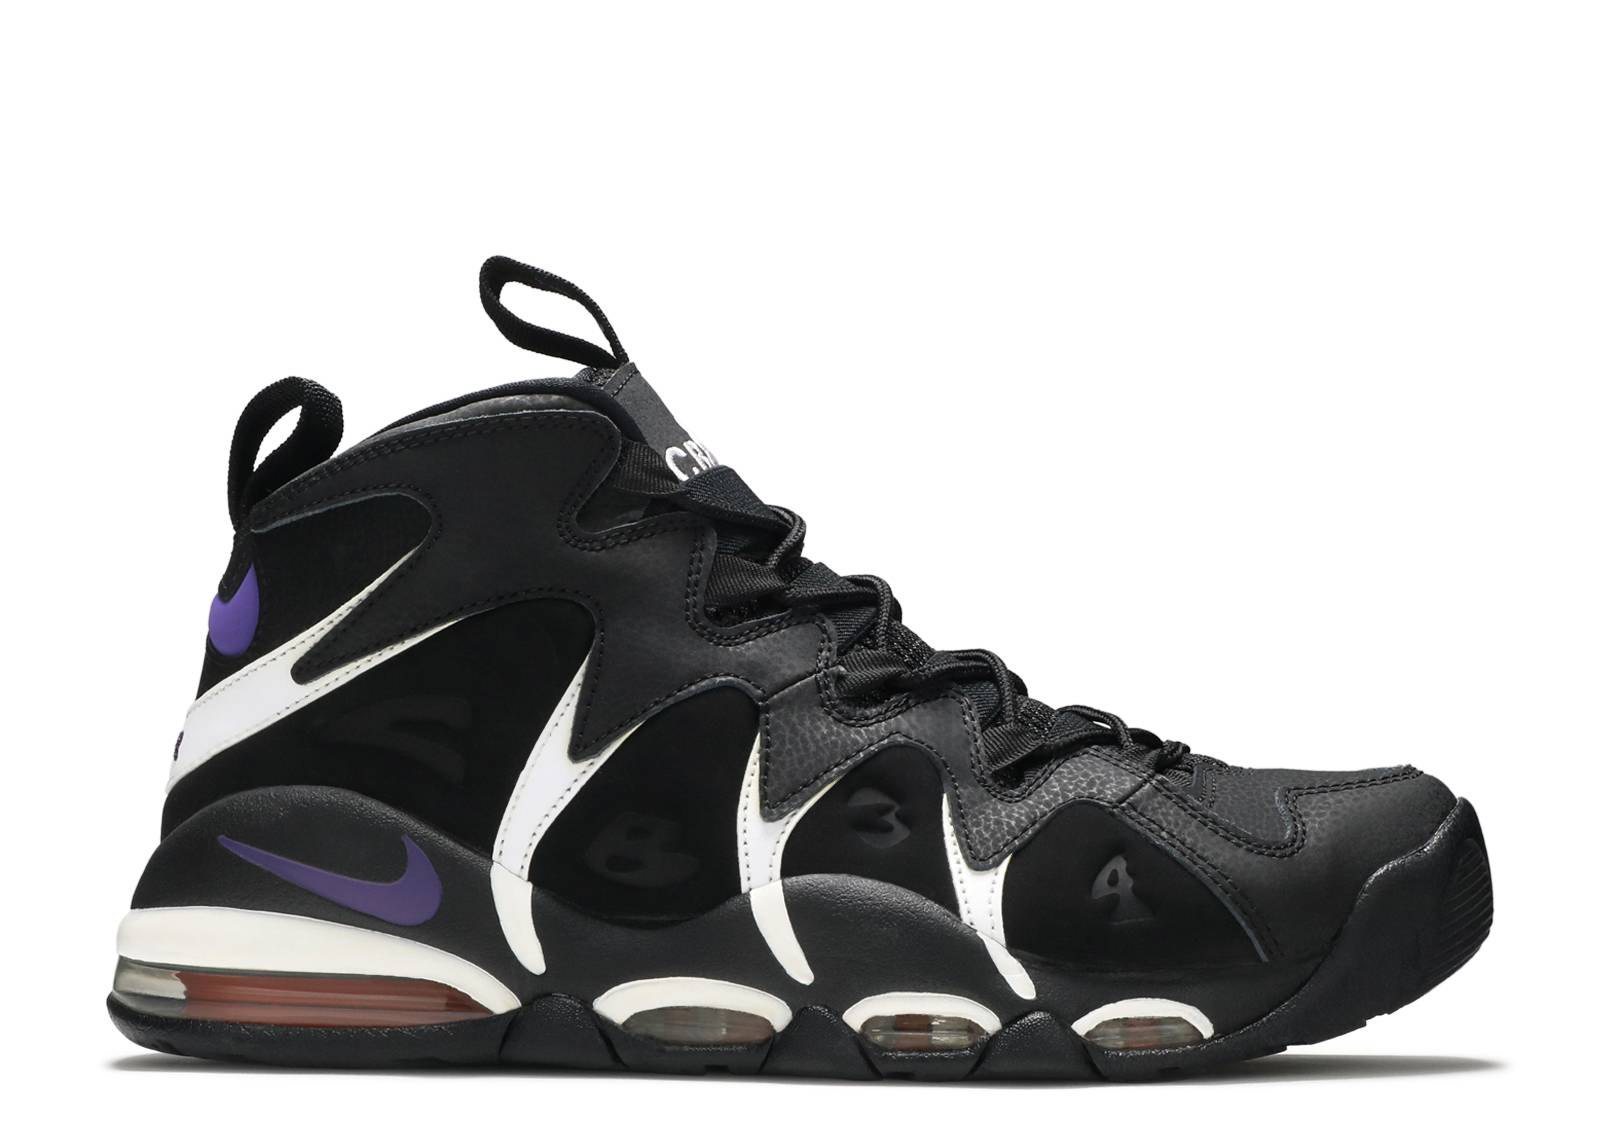 Air Max Cb34 - Nike - 414243 002 - black club purple-tm orng-blk ... bac9dbec3